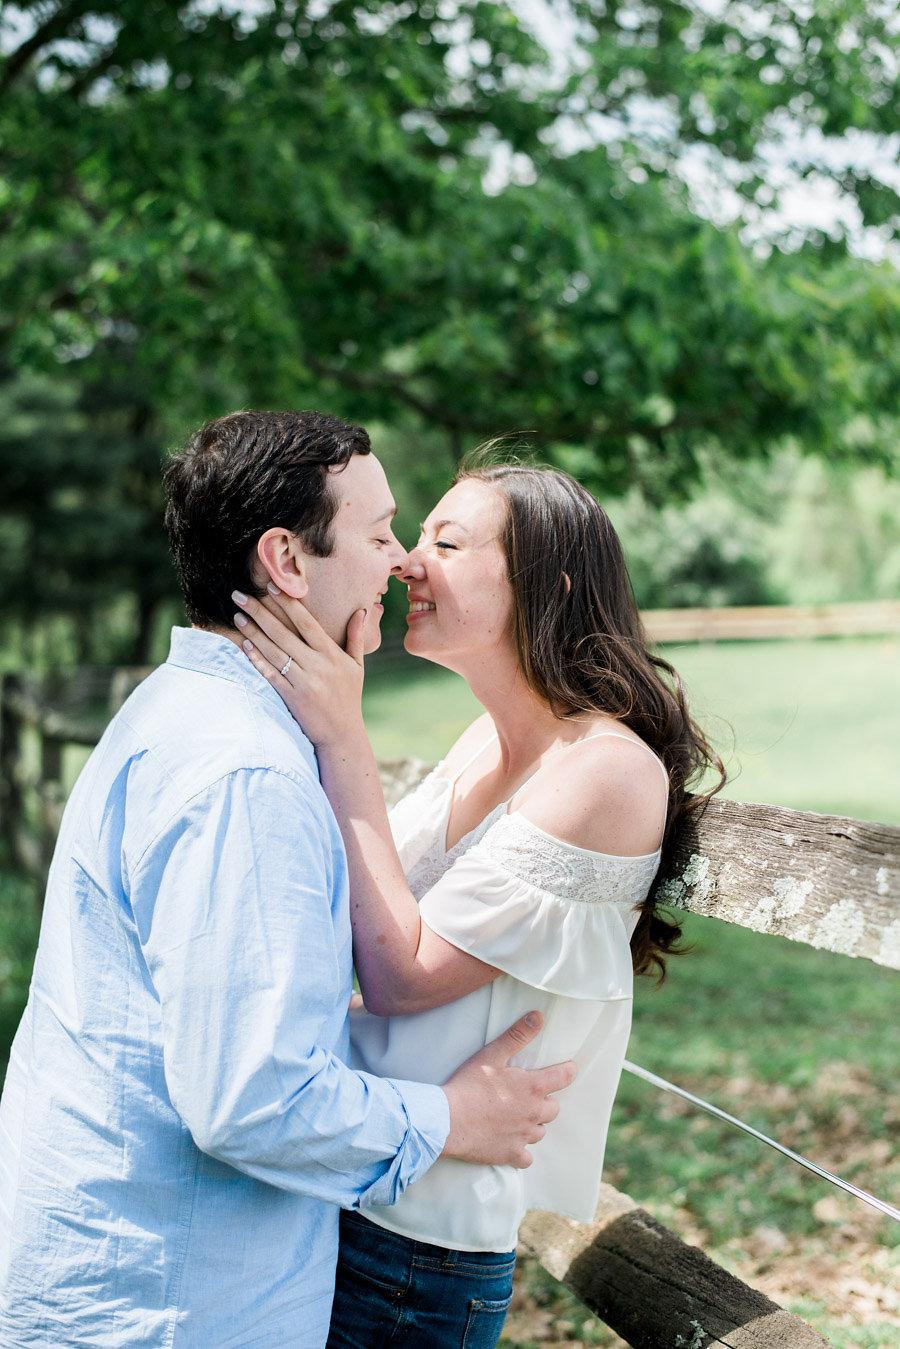 emcee_studio_photographie_engagement_photography_bride_groom_emily_jack_march_2016-42